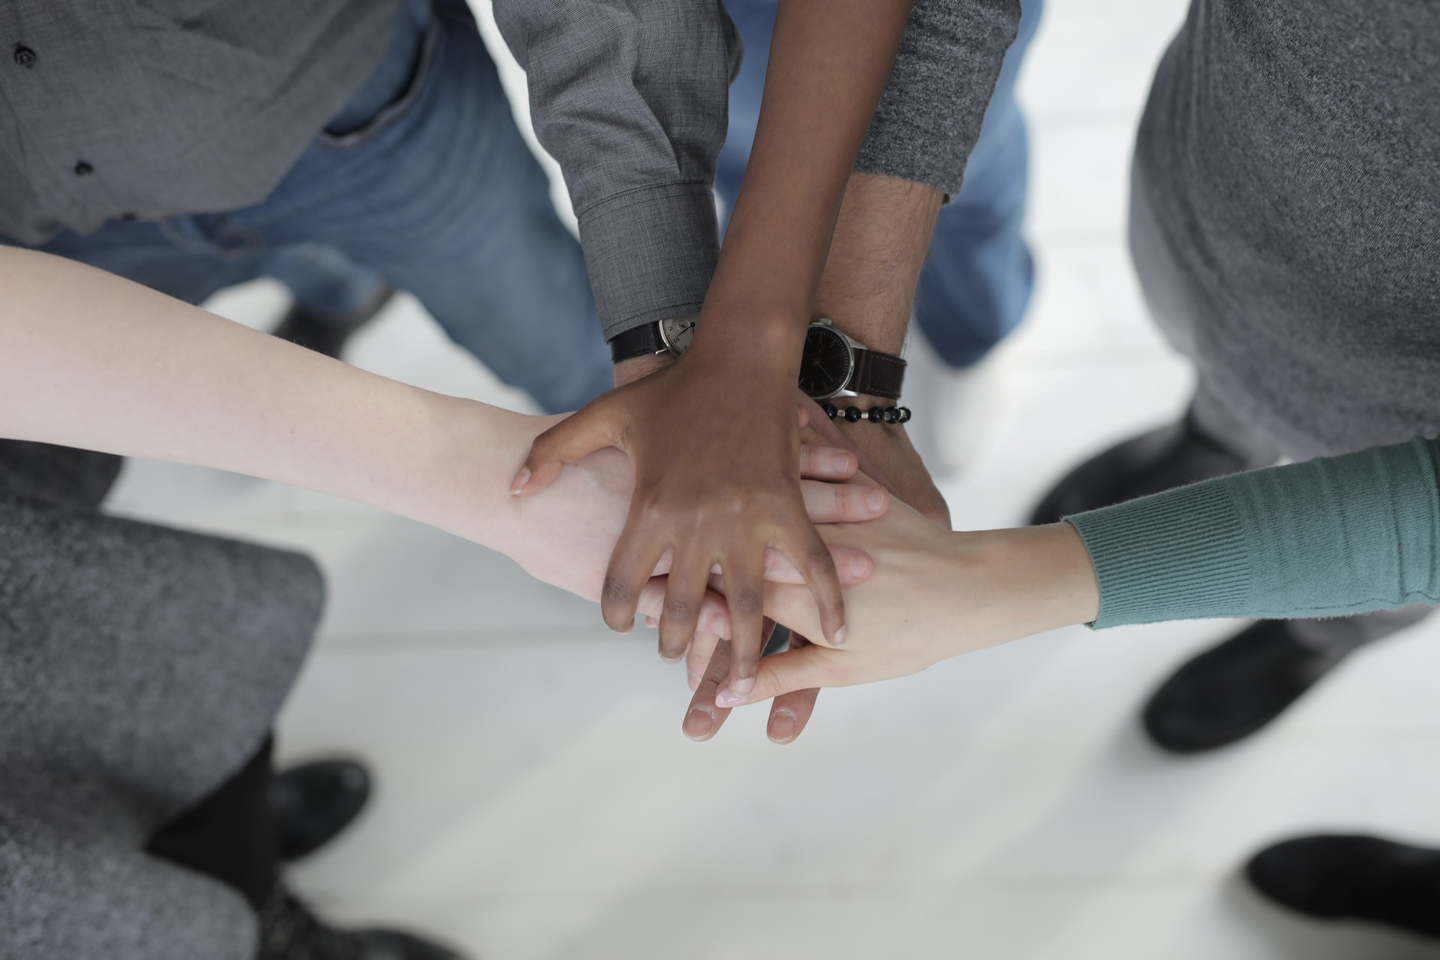 image-of-team-huddle-hands-in-professional-clothes-diverse-career-development